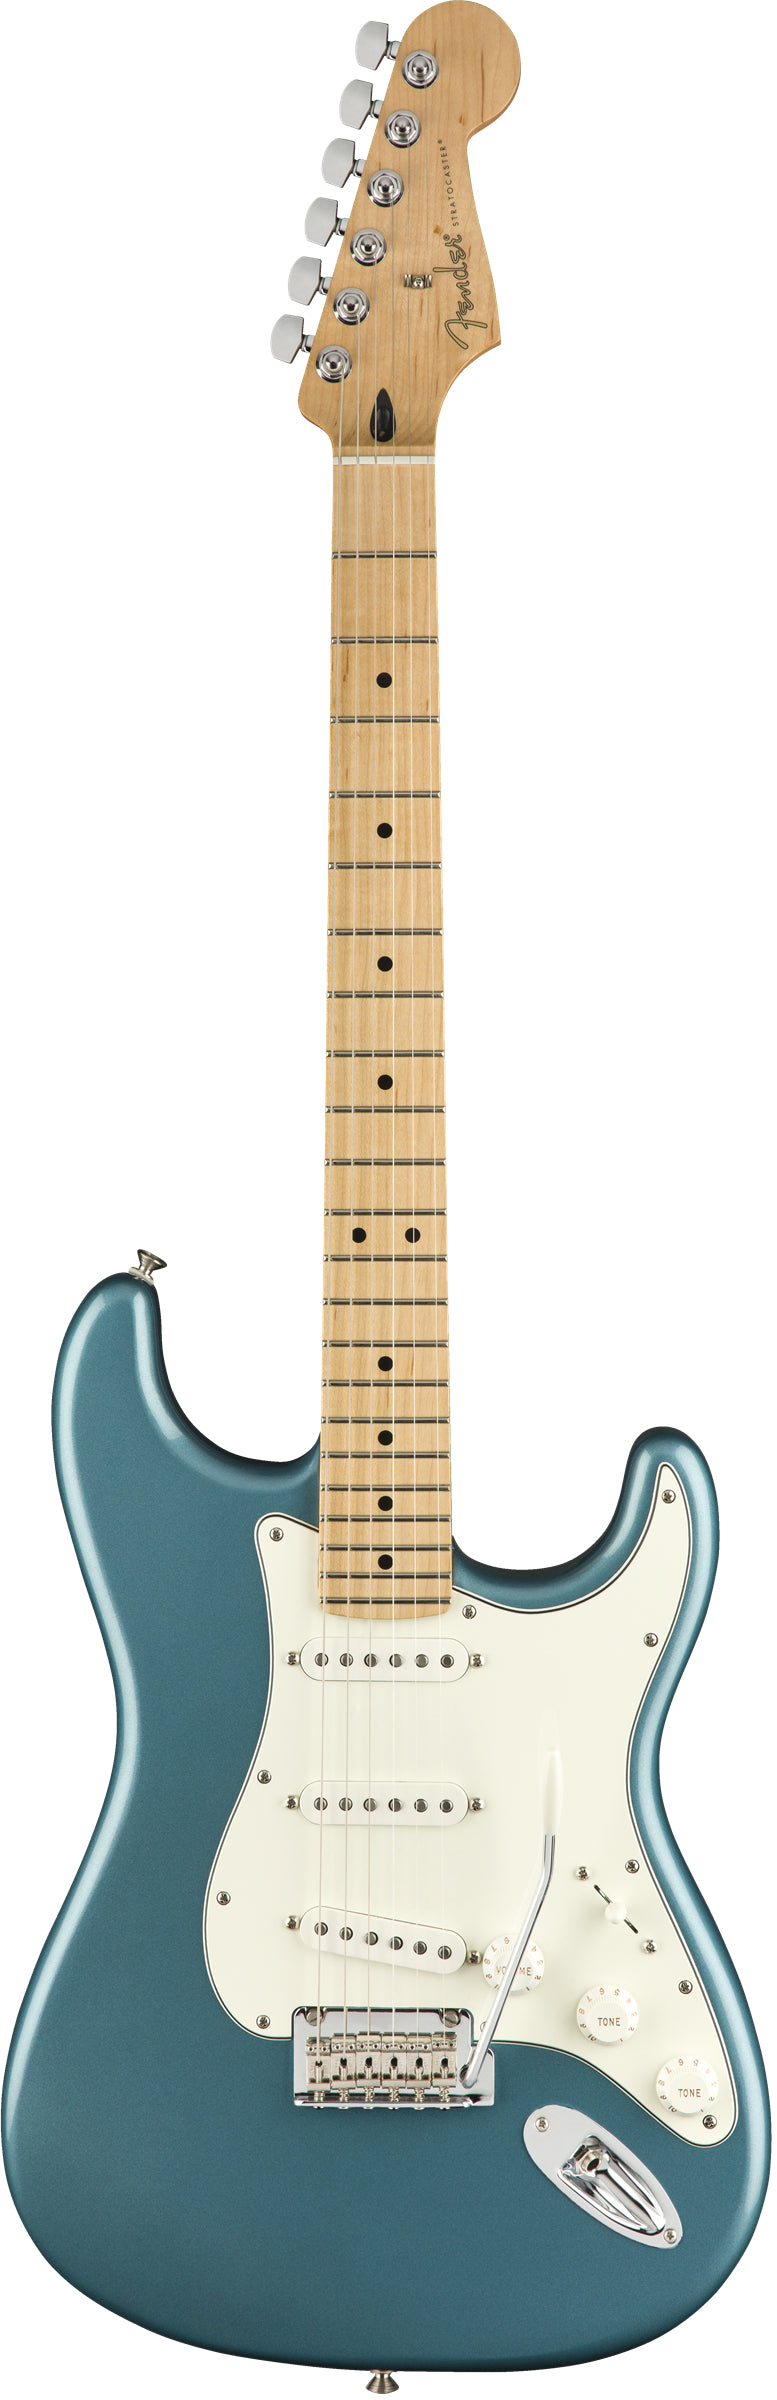 Fender Player Stratocaster Electric Guitar, Maple Fingerboard